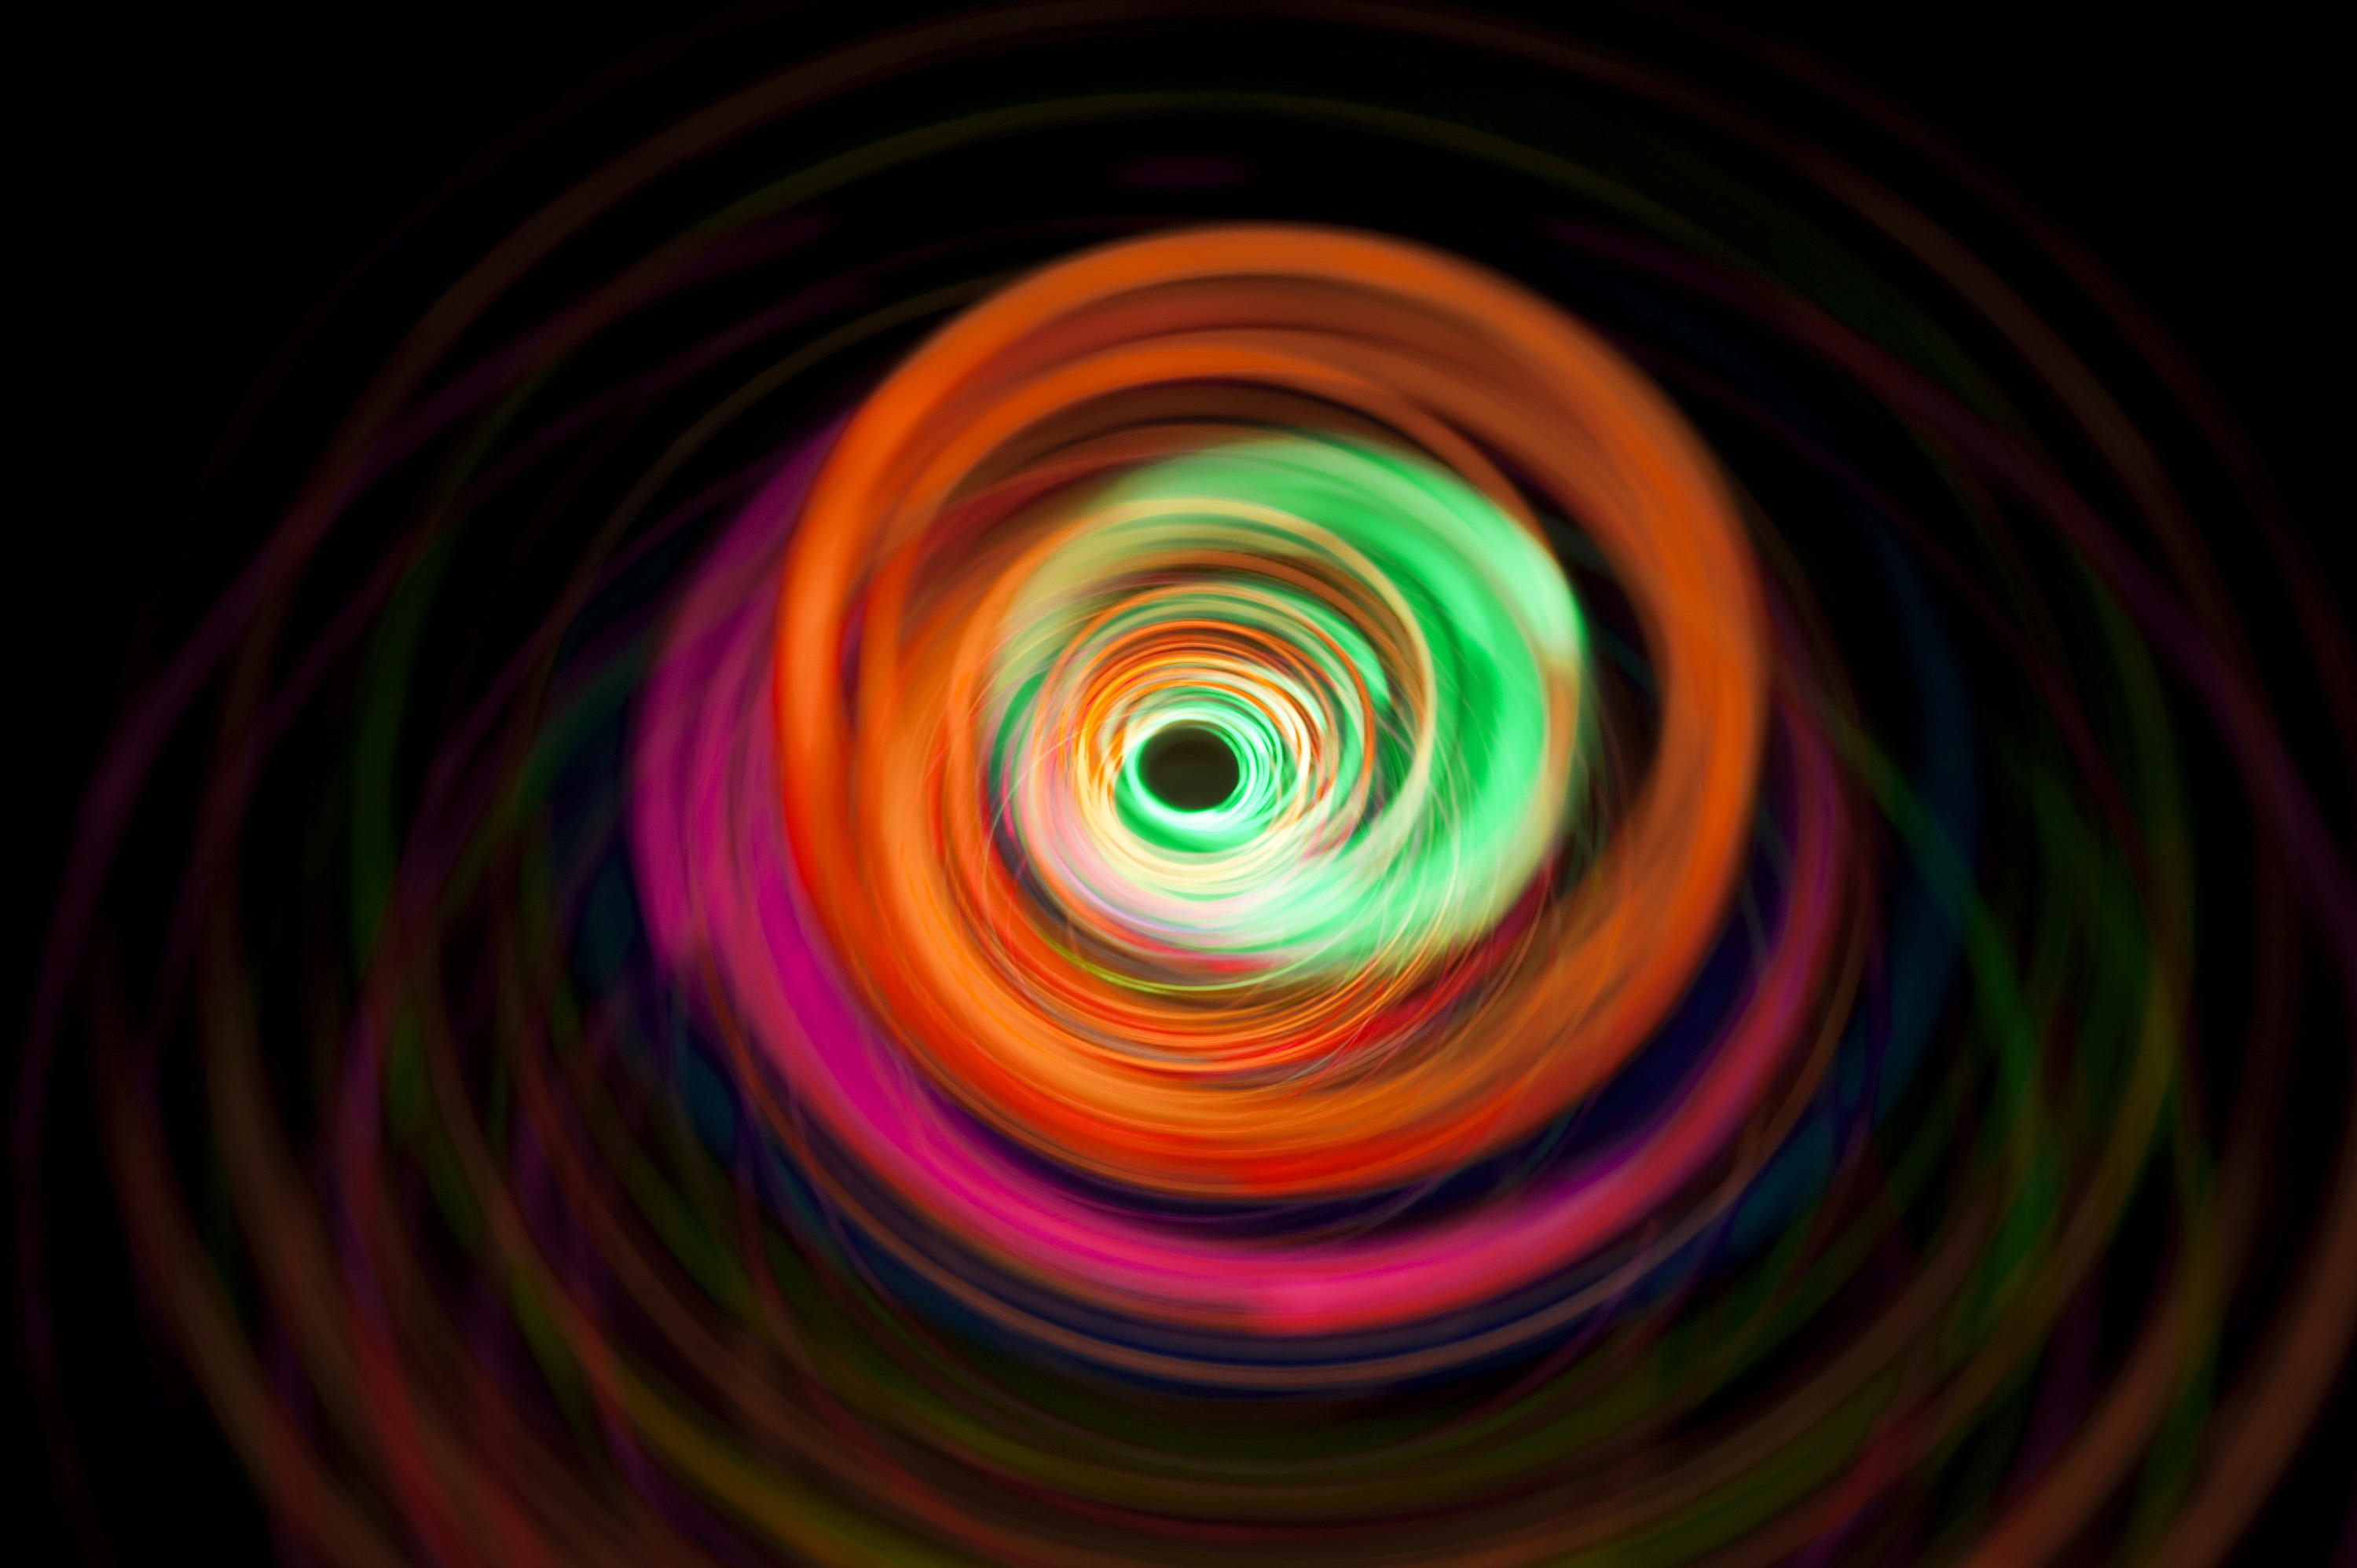 a tunnel of light created with overlapping circles of illumination